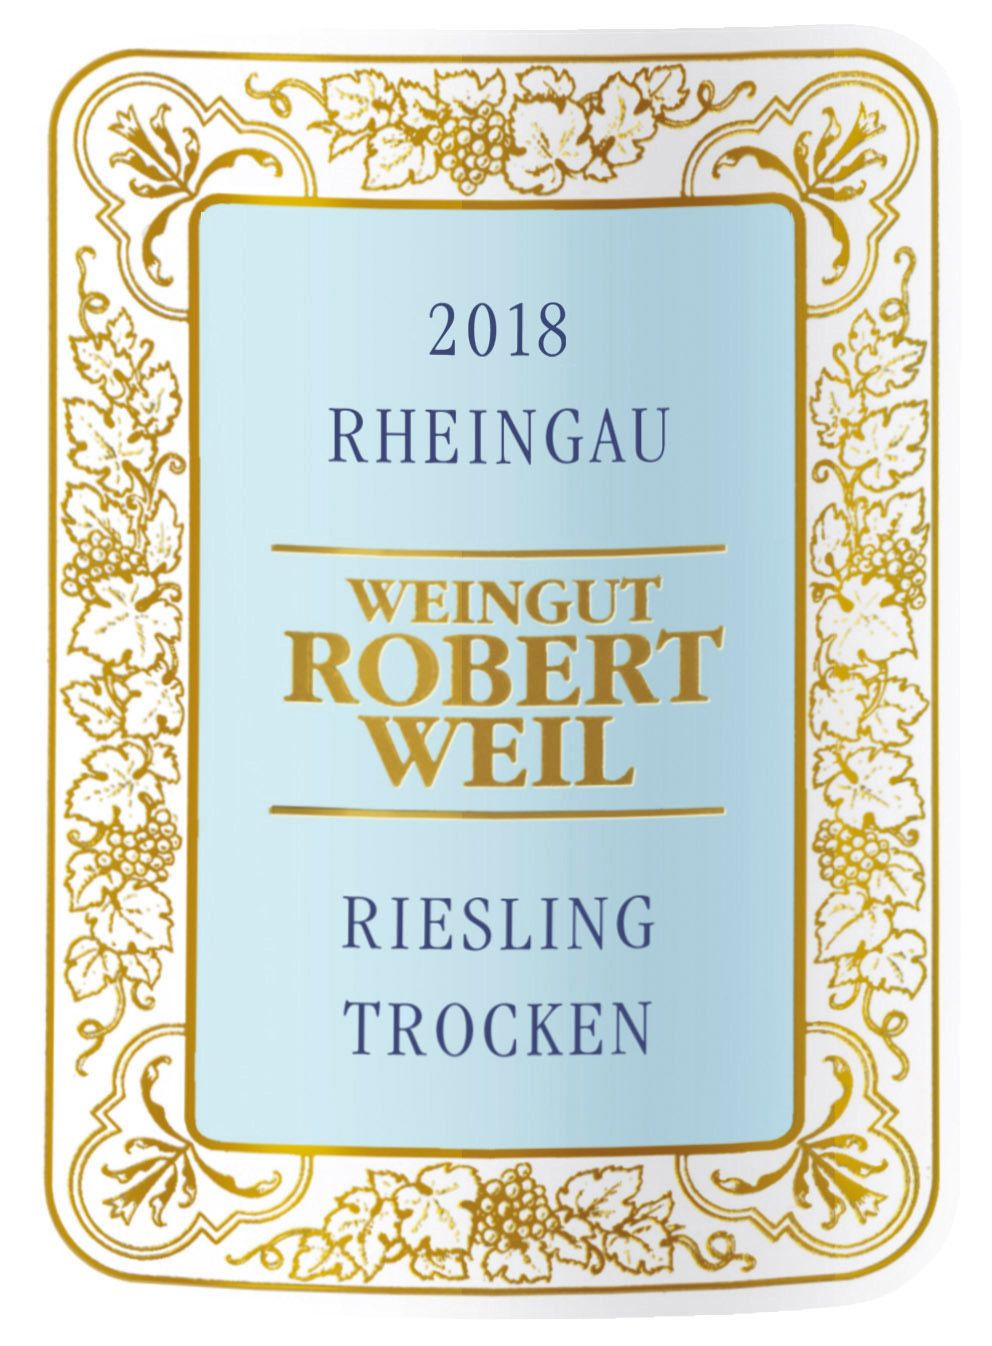 Robert Weil Estate Riesling Trocken 2018  Front Label